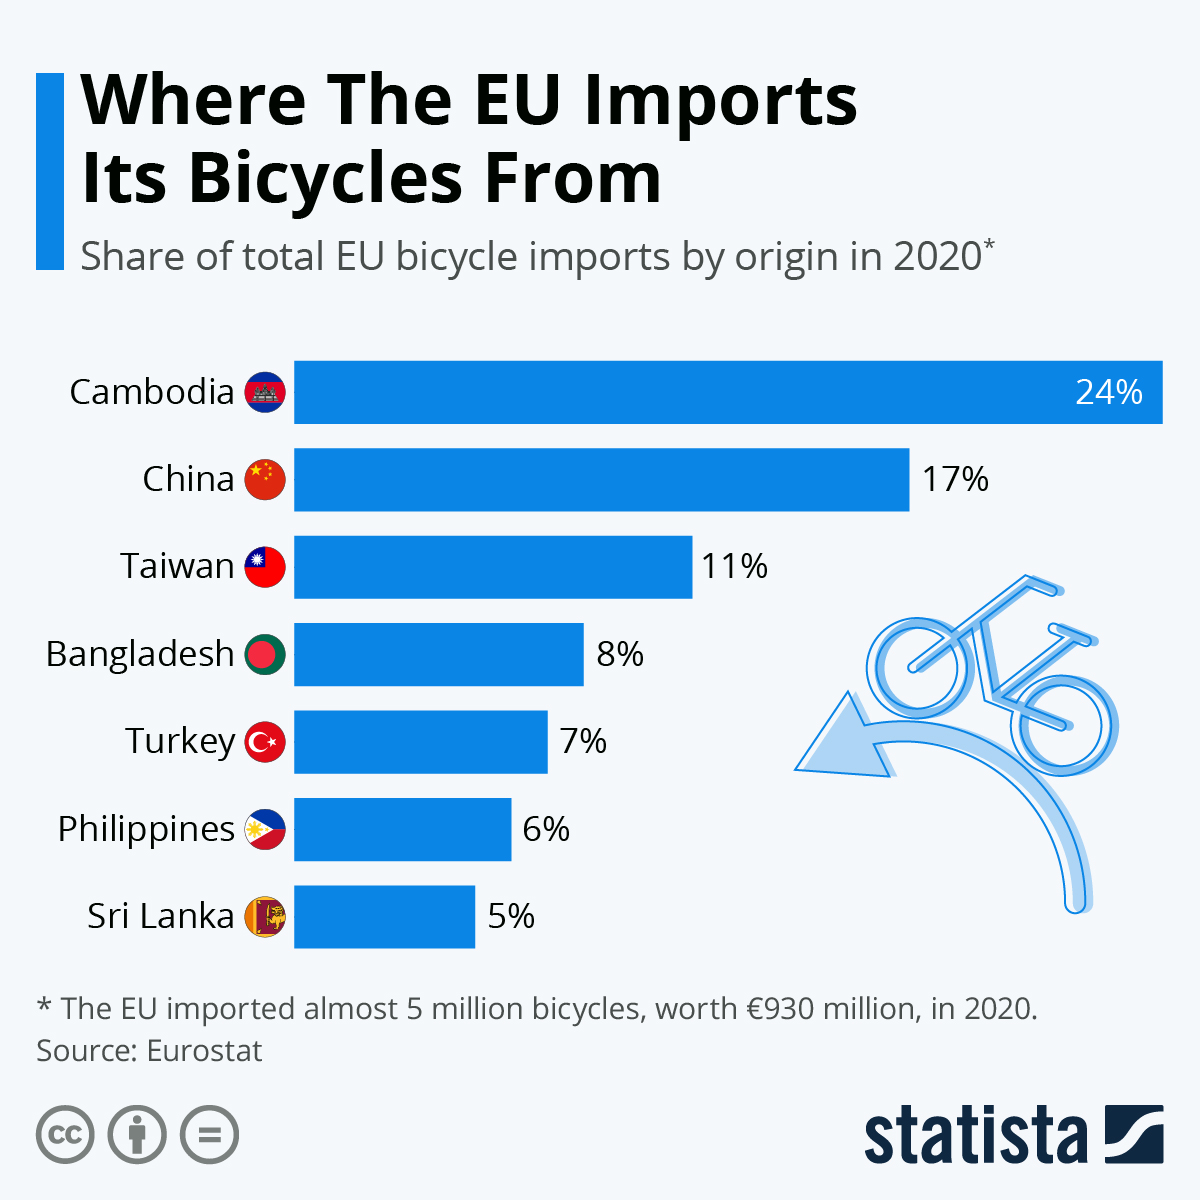 Bike usage is increasingly encouraged, but where does the EU gets its bikes from?